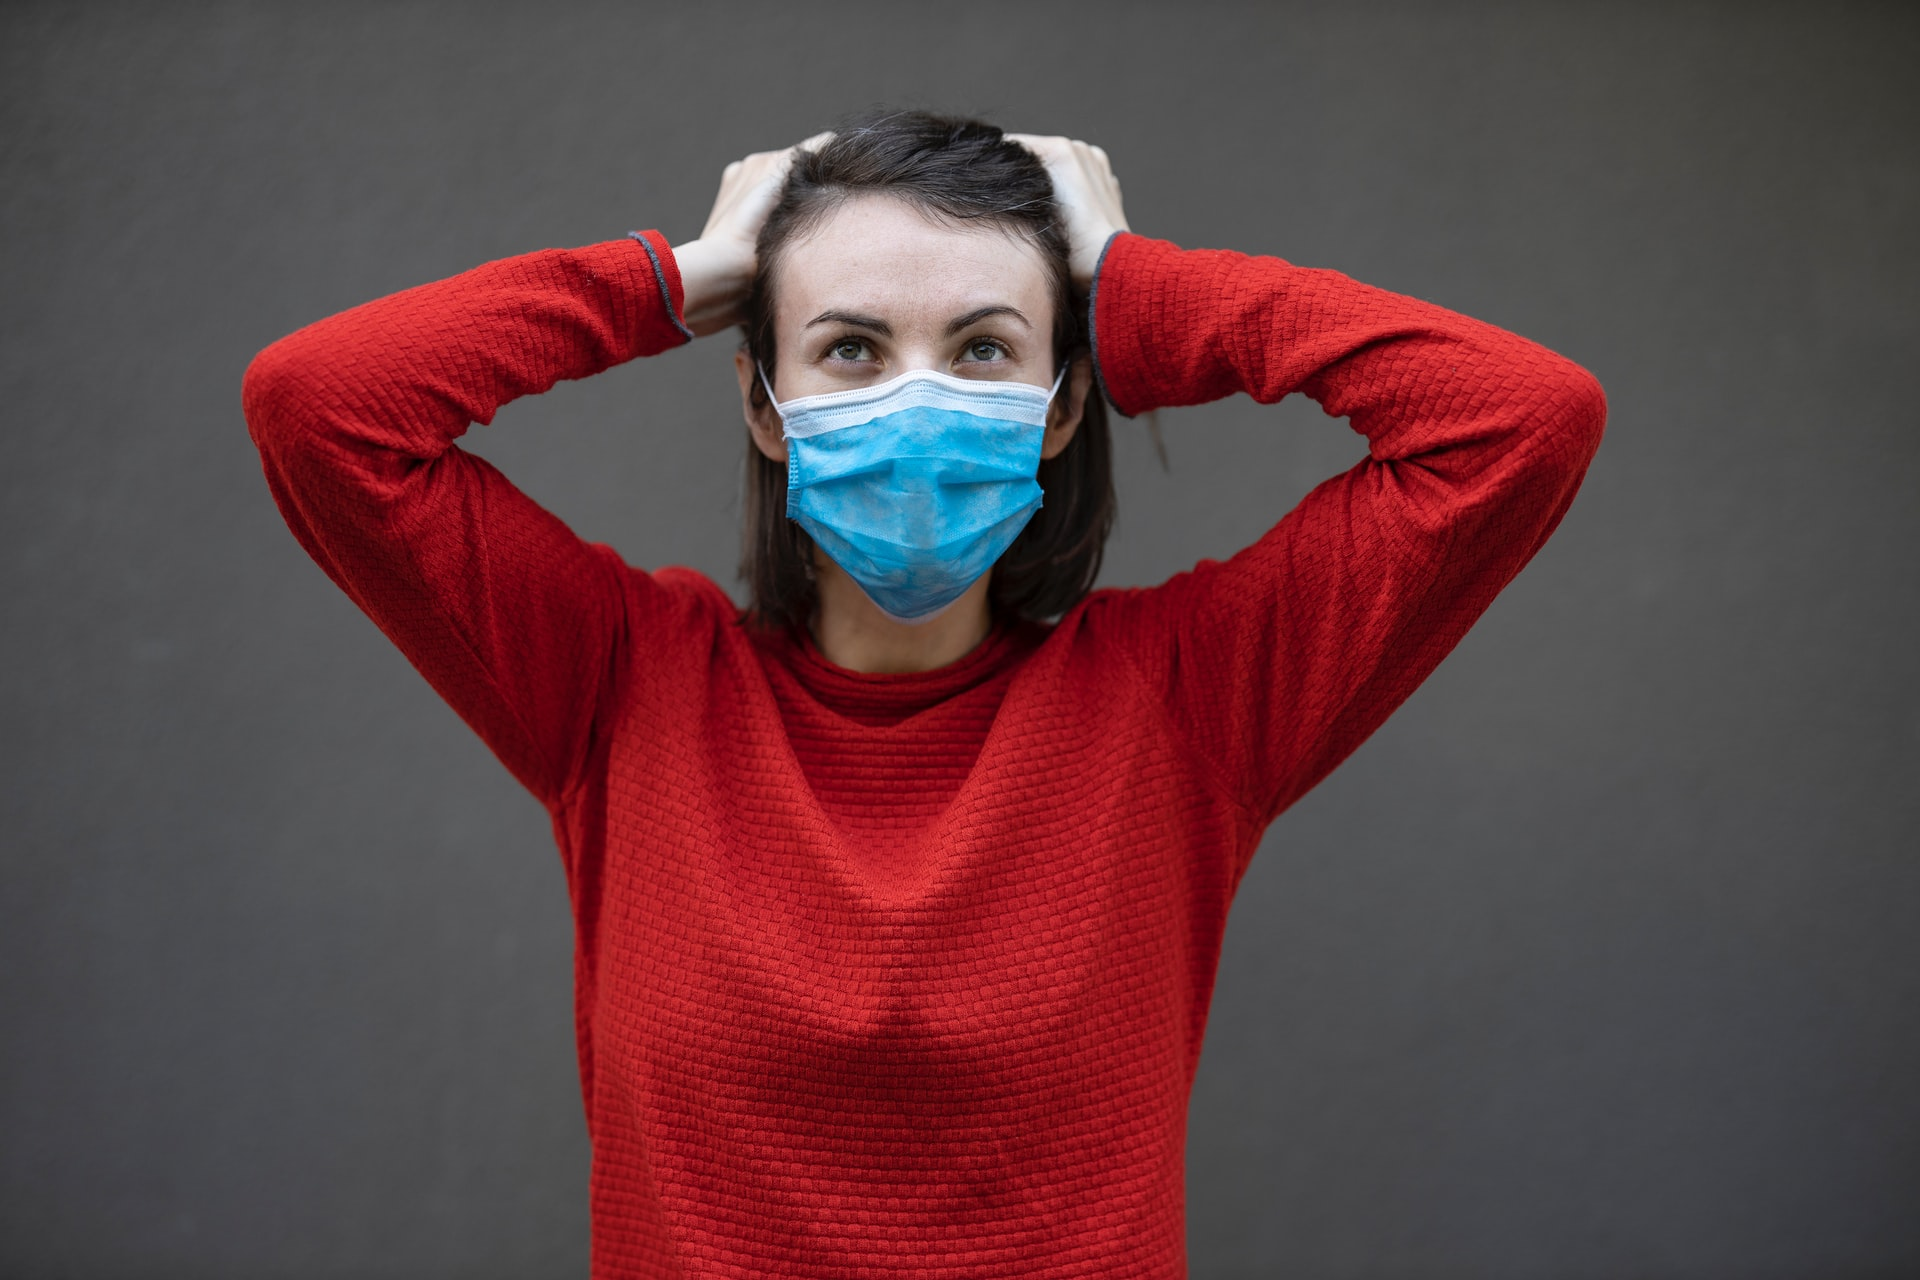 Wearing Mask And Social Distancing: Ways To Protect Your Families And Relatives During COVID 19